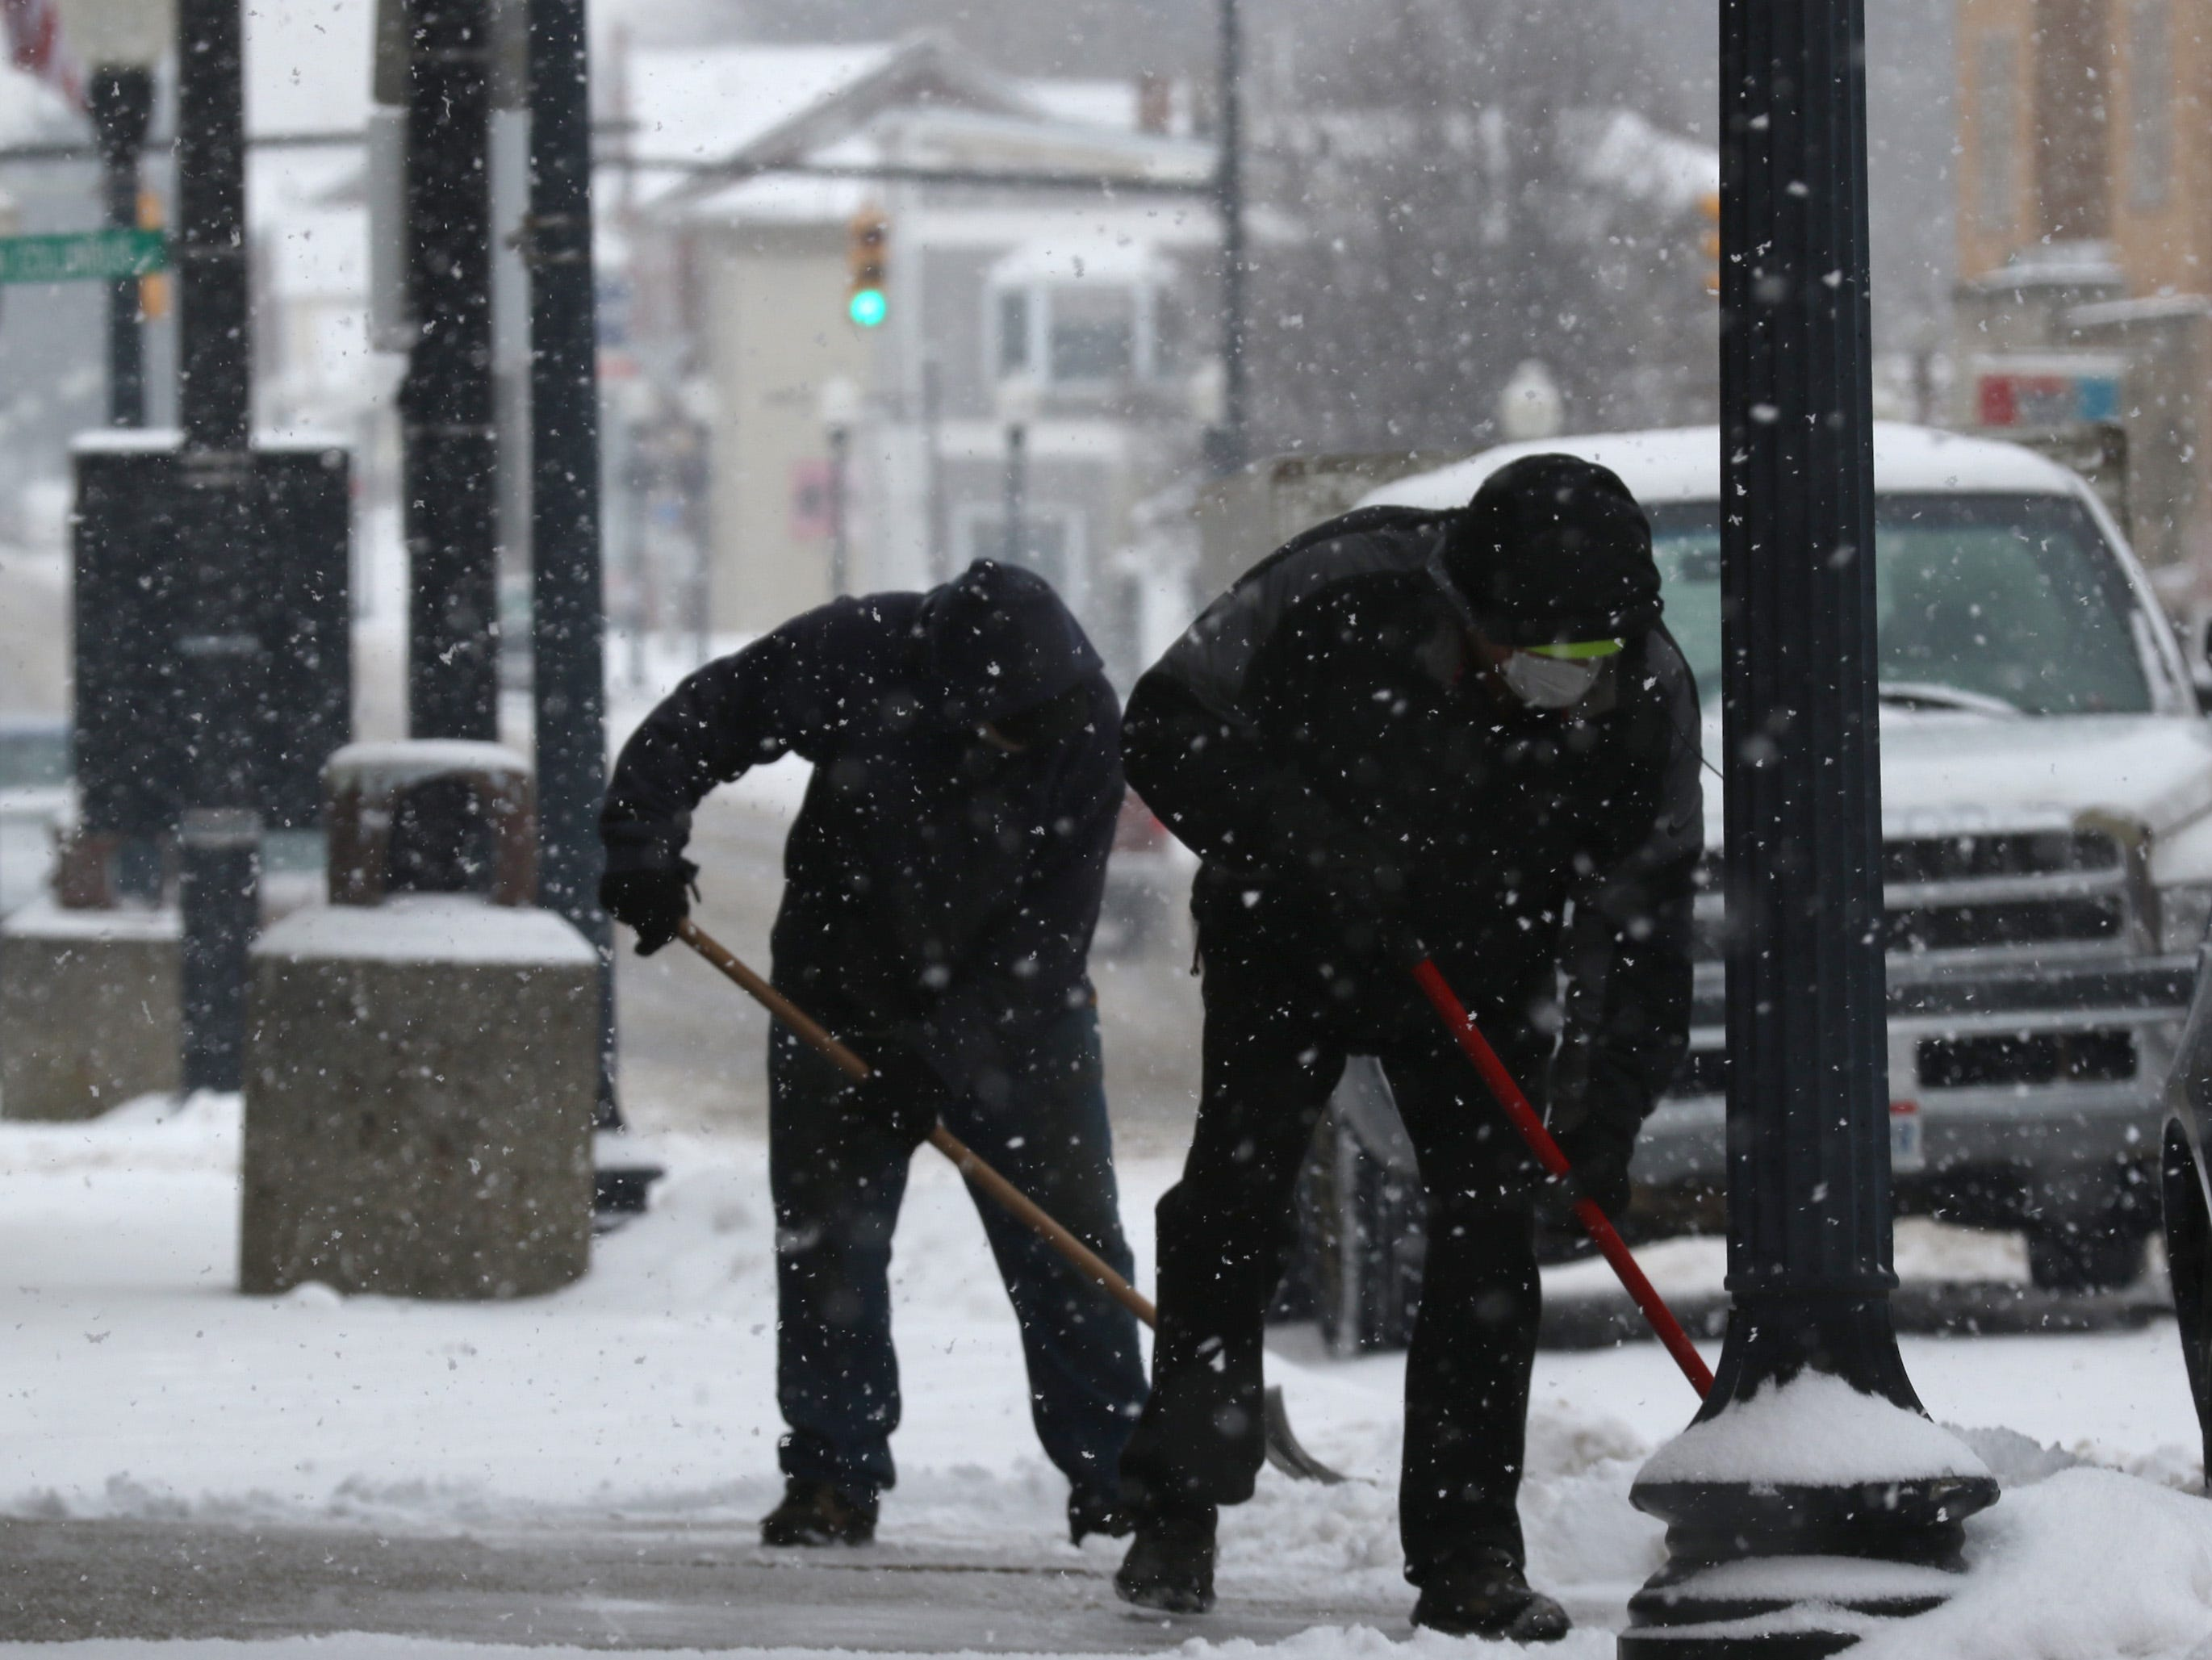 Winter storm Harper dropped several inches of snow in the Crawford County area on Saturday.